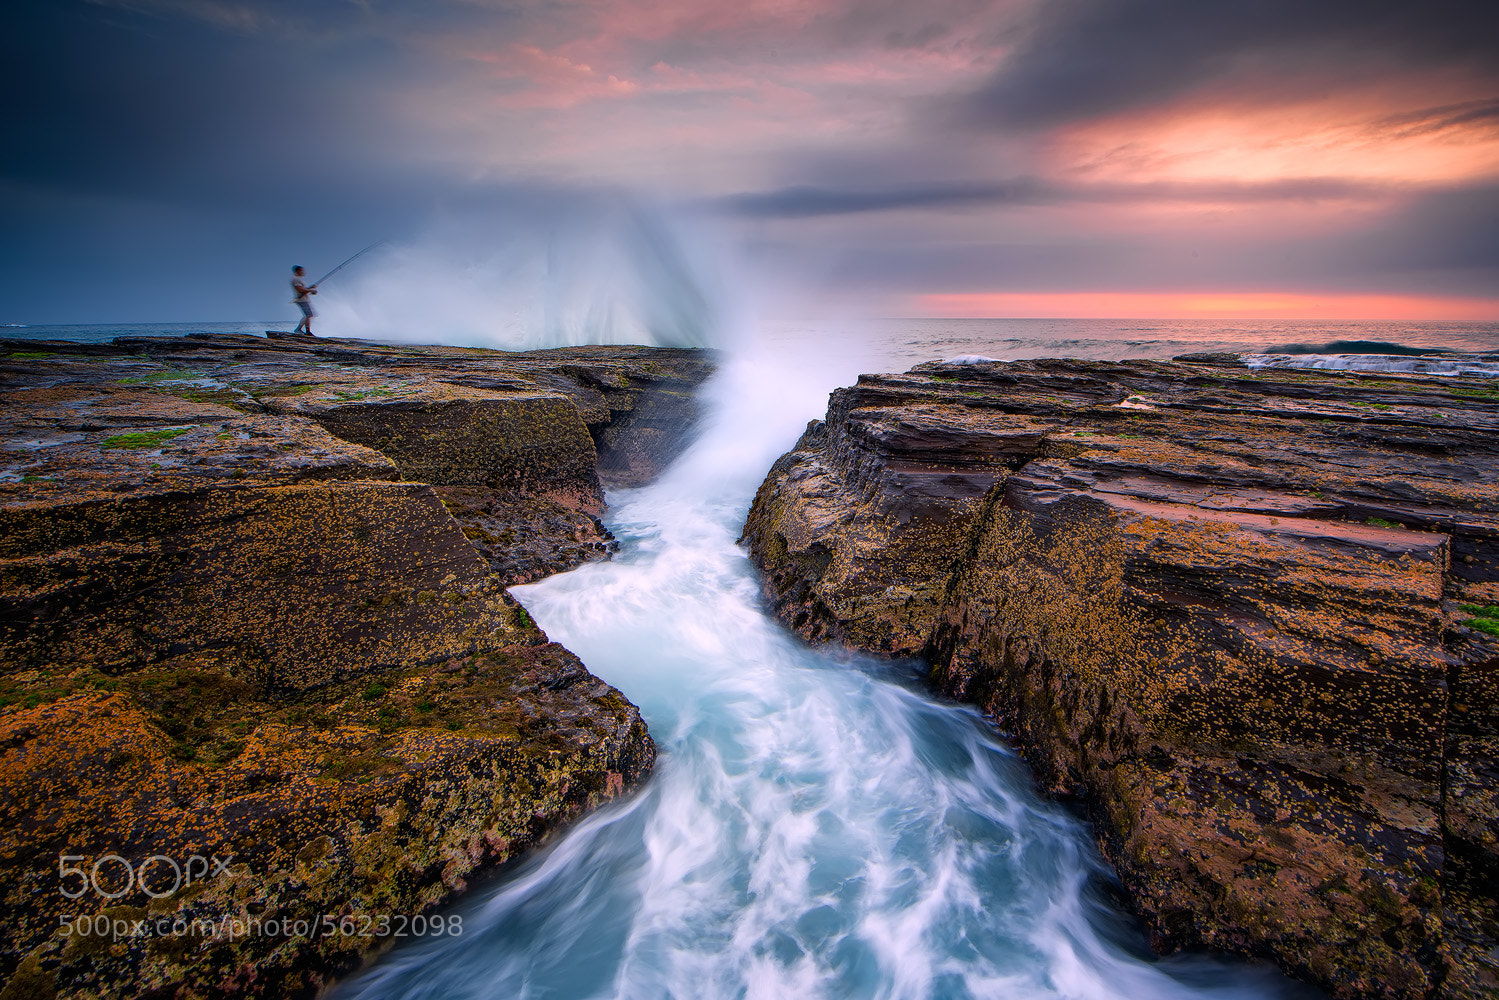 Photograph Challenging by Joshua Zhang on 500px